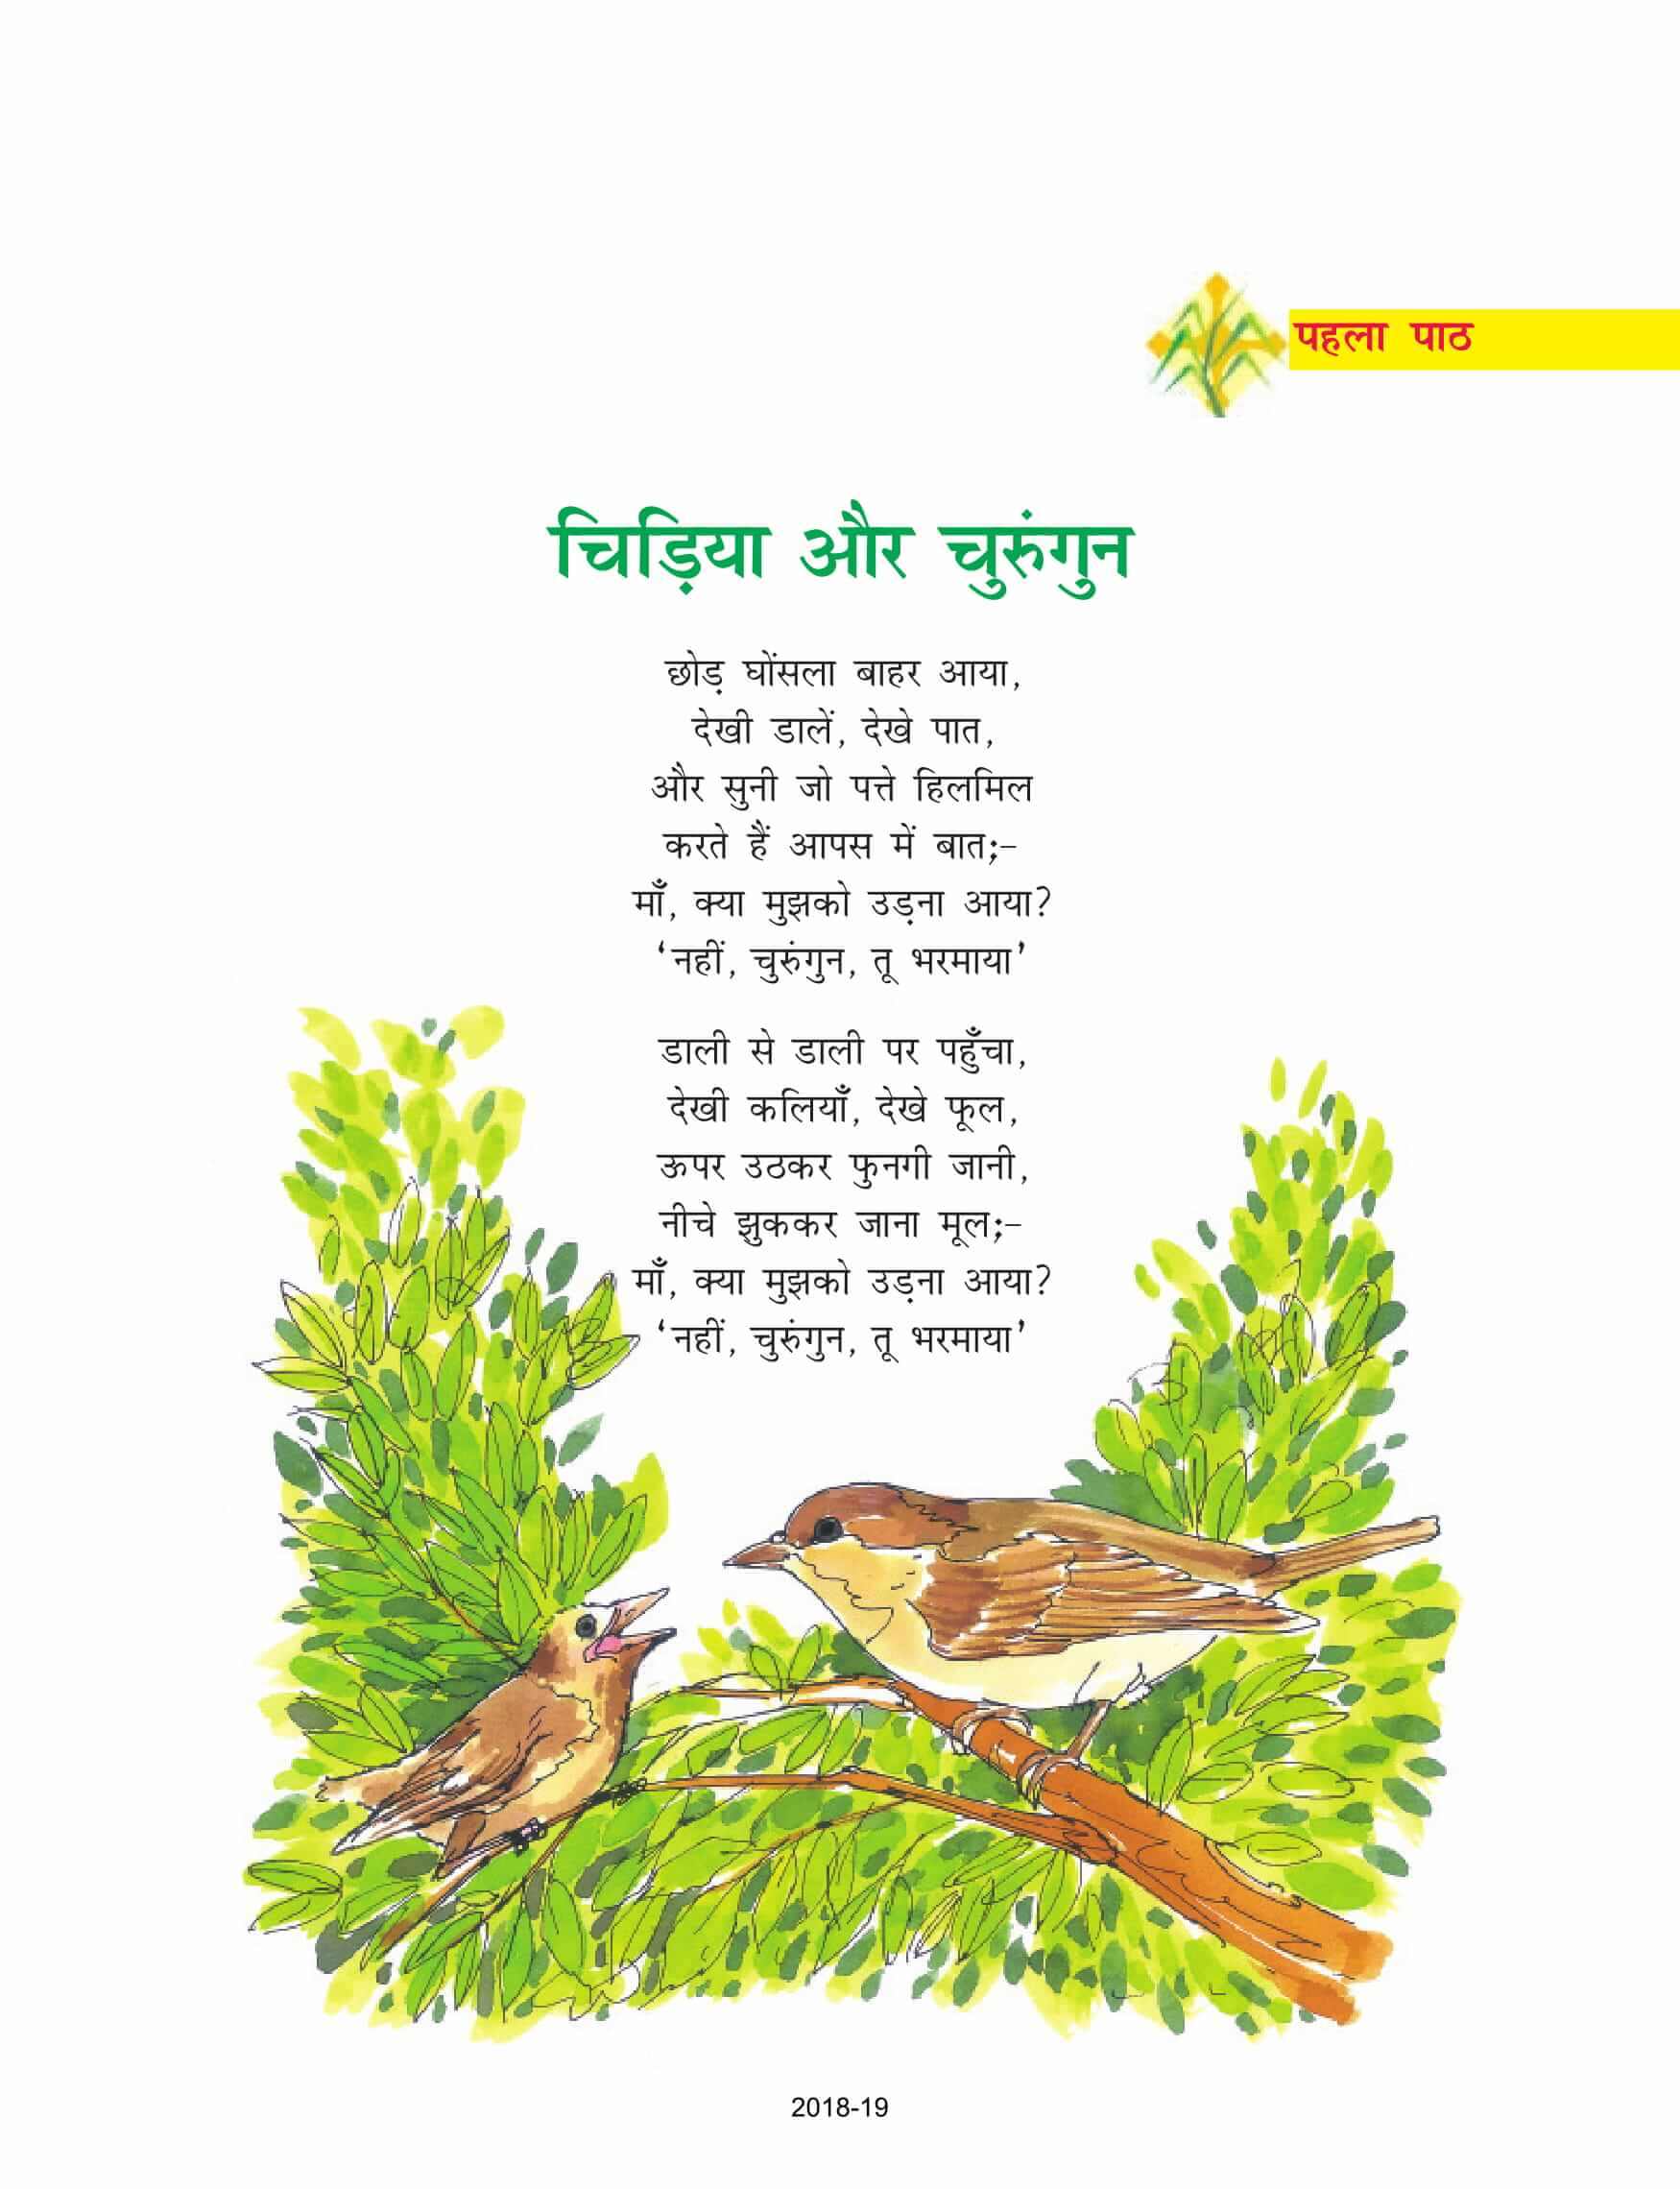 NCERT Solutions For Class 7 Hindi Durva Chapter 1